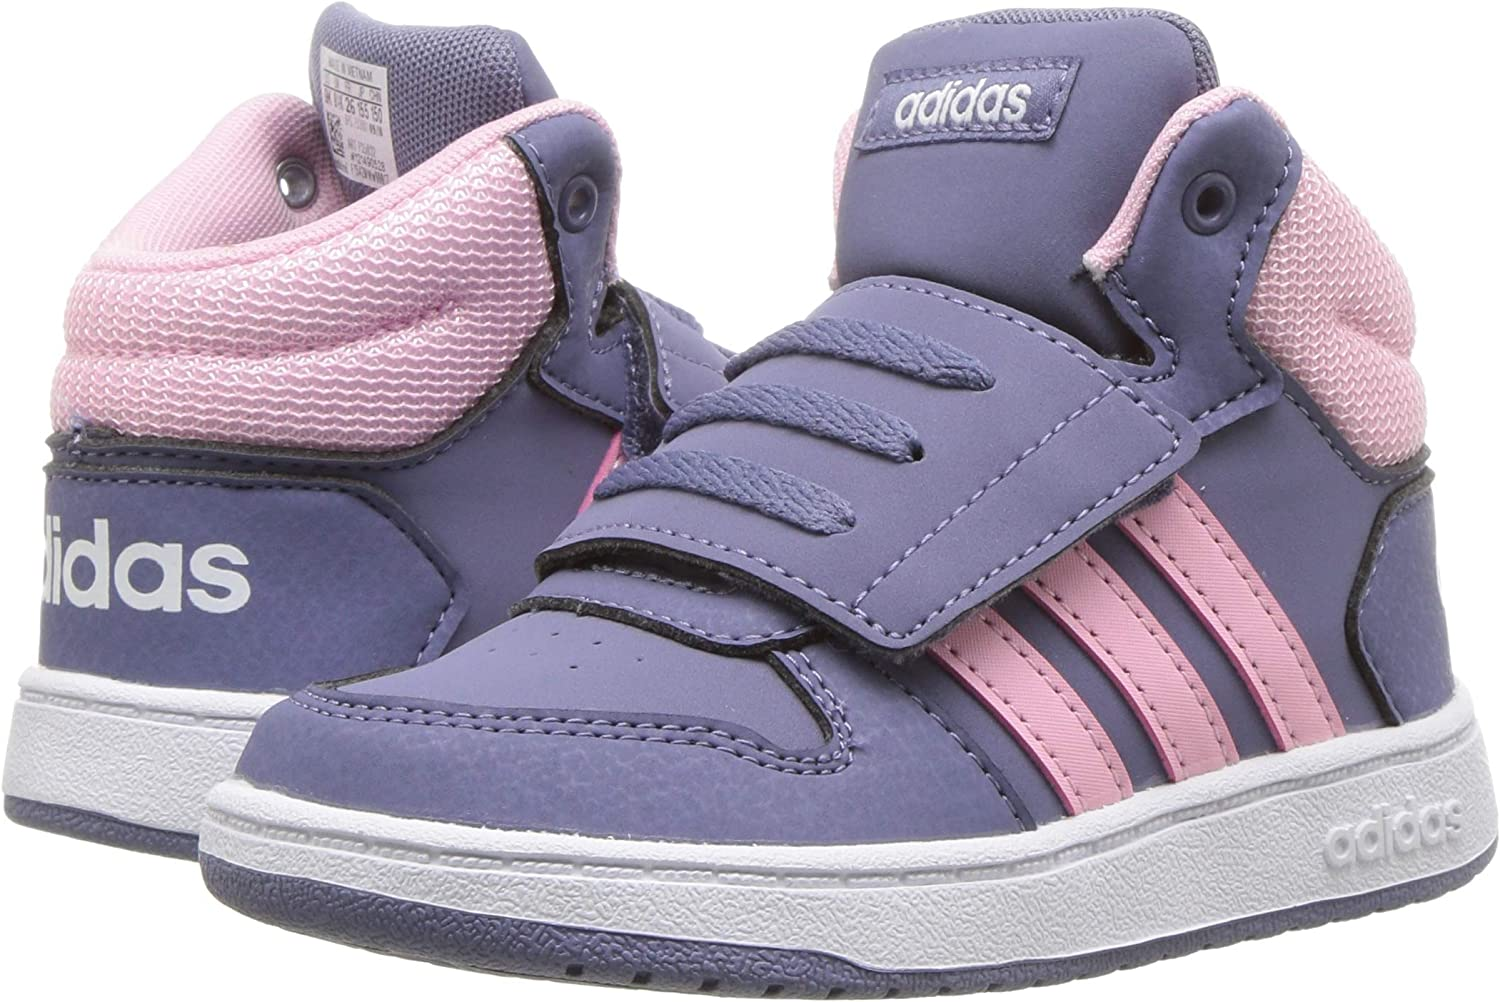 Toddlers Basketball adidas Hoops Mid 2.0 Shoe